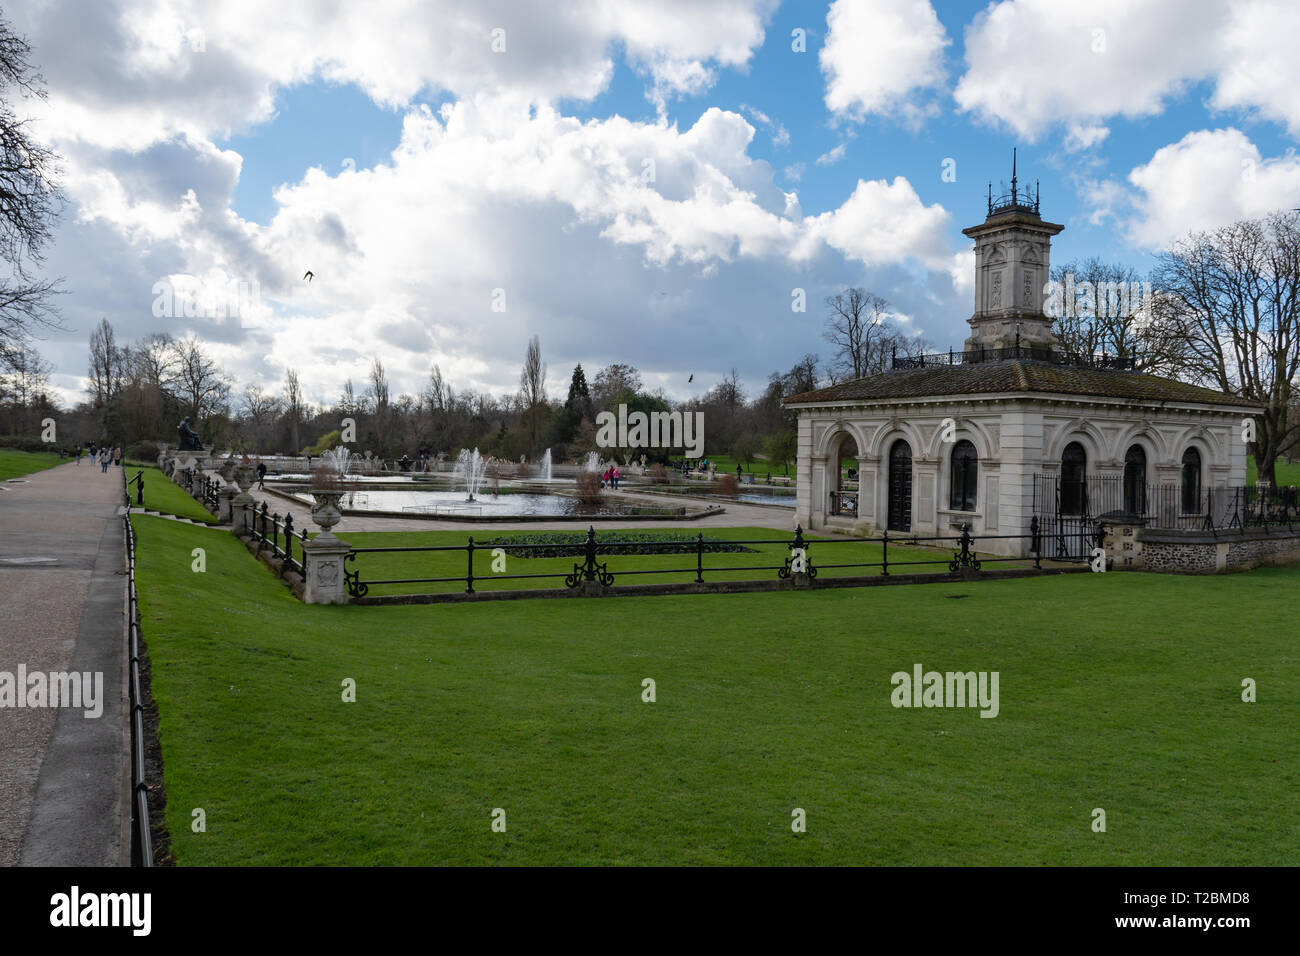 Fountain in the park of London Stock Photo